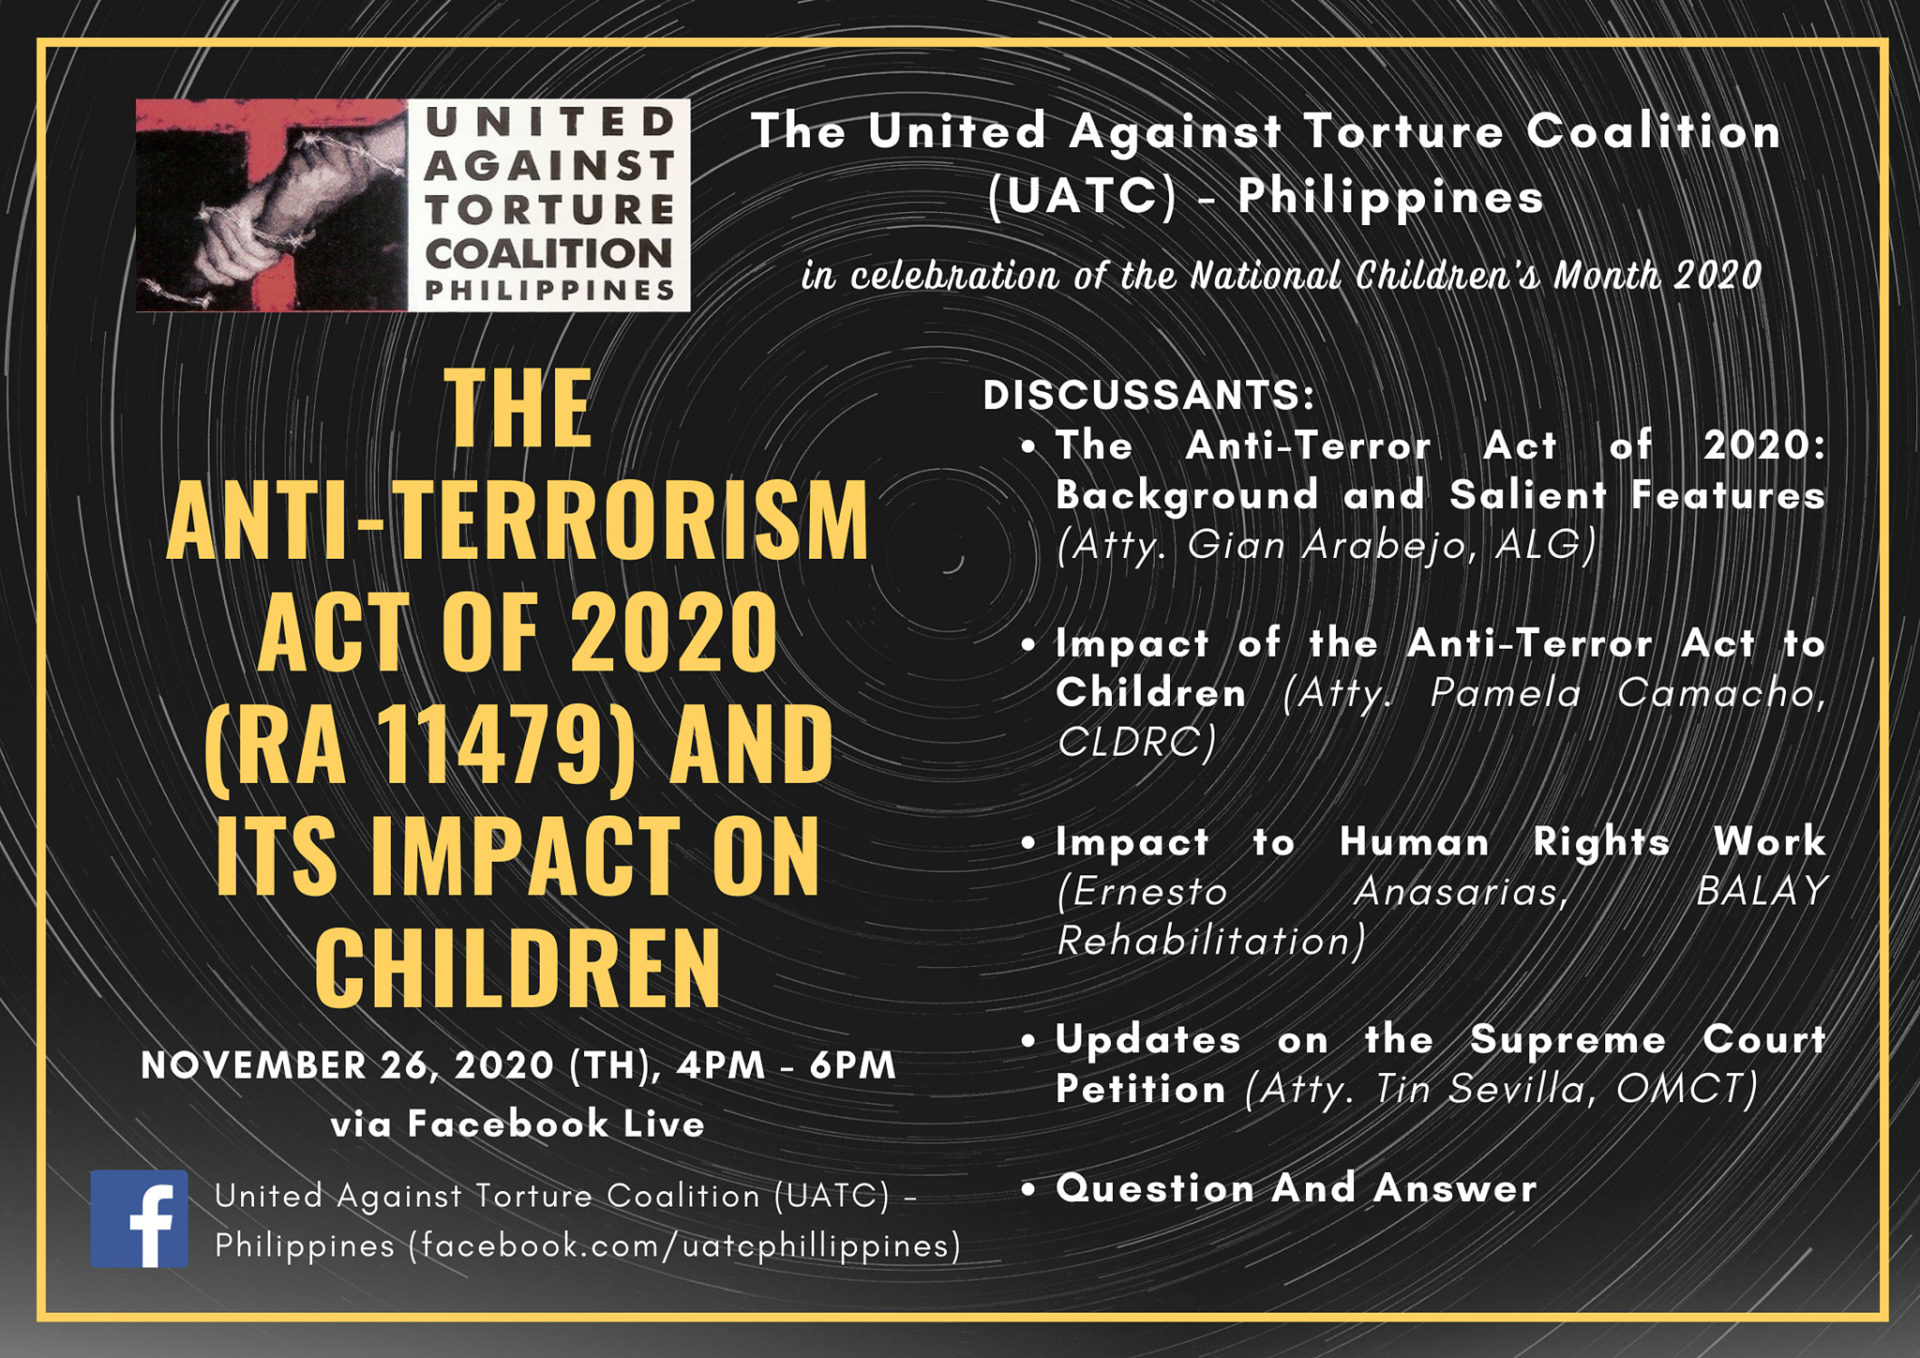 Webinar tackling the impacts of Anti-Terror Act 2020 on children